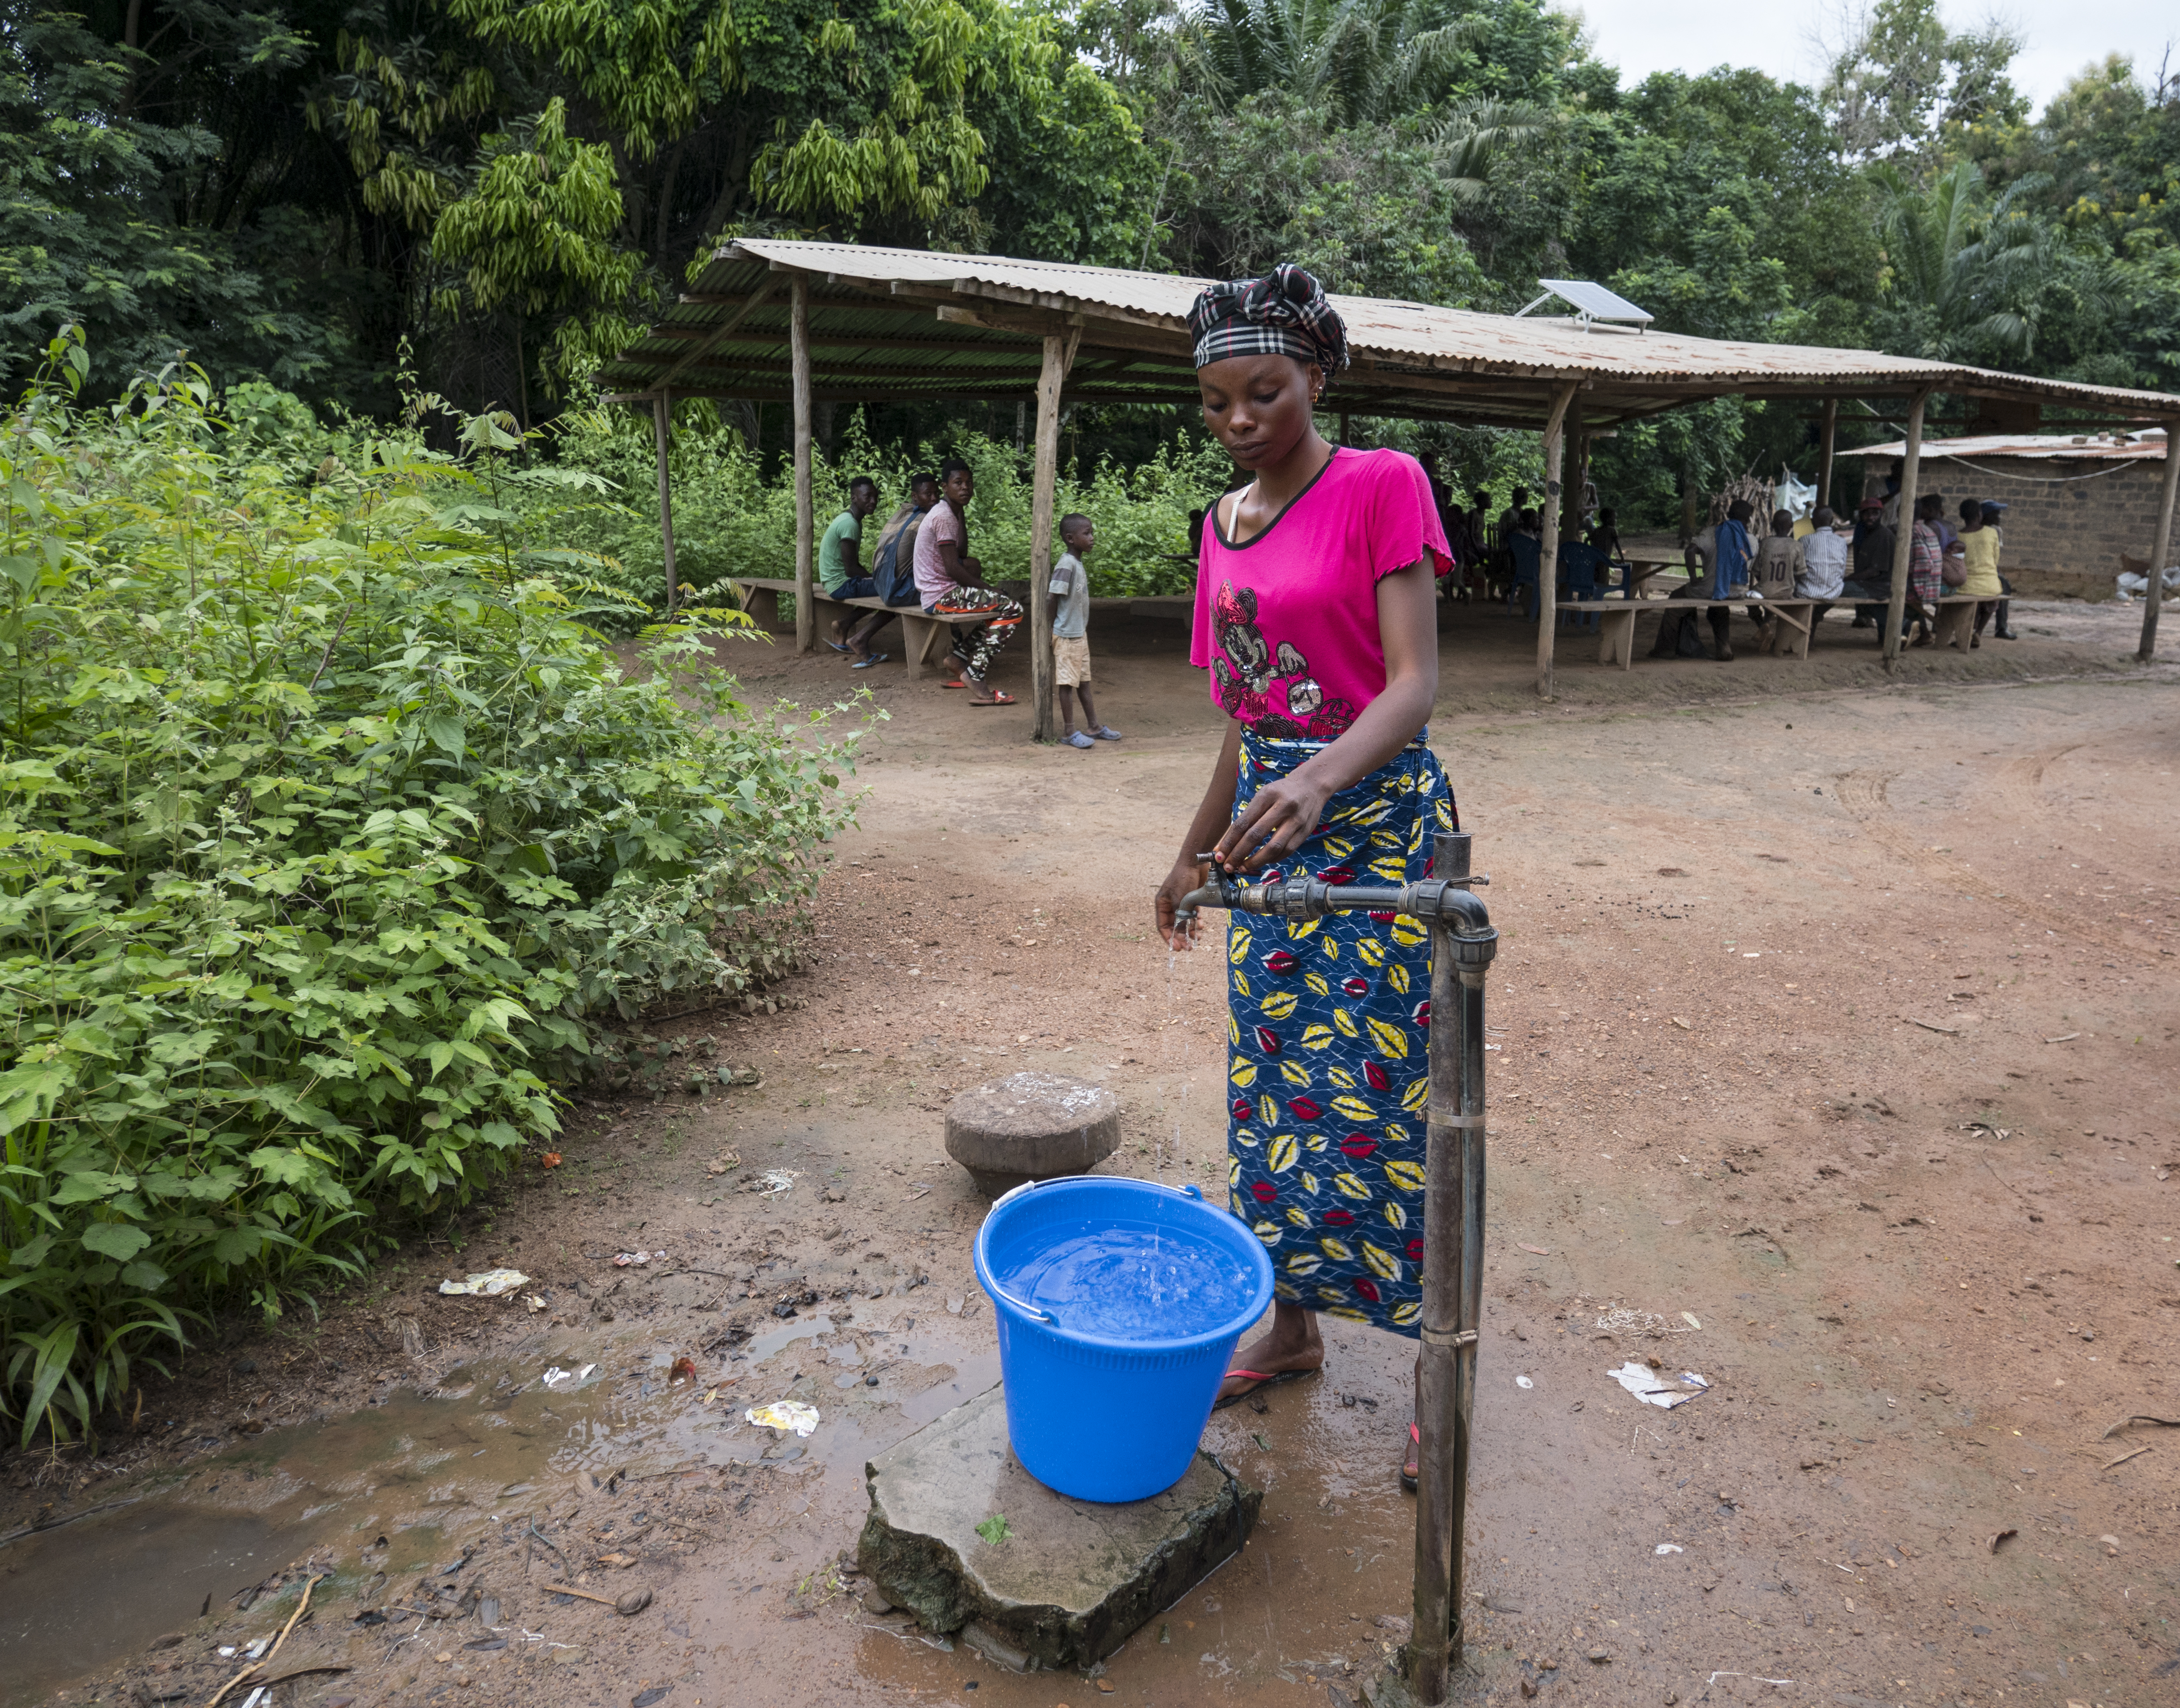 A woman uses the water pump given to the residents of Malolo 2 by Todi River Farms. (Photo by Molly Bergen/WCS, WWF, WRI)